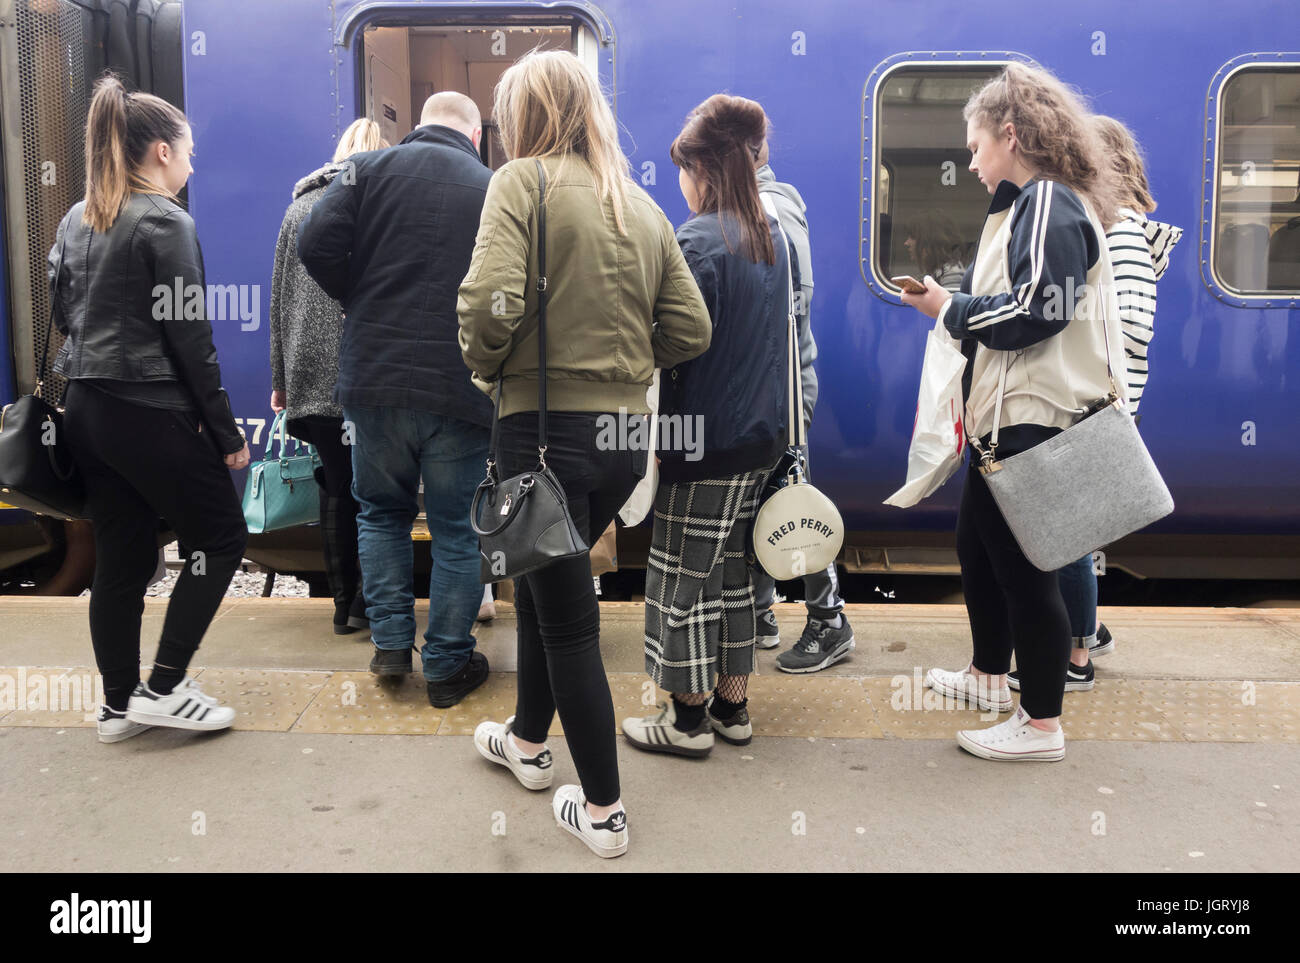 Passengers boarding a crowded train in England. UK - Stock Image